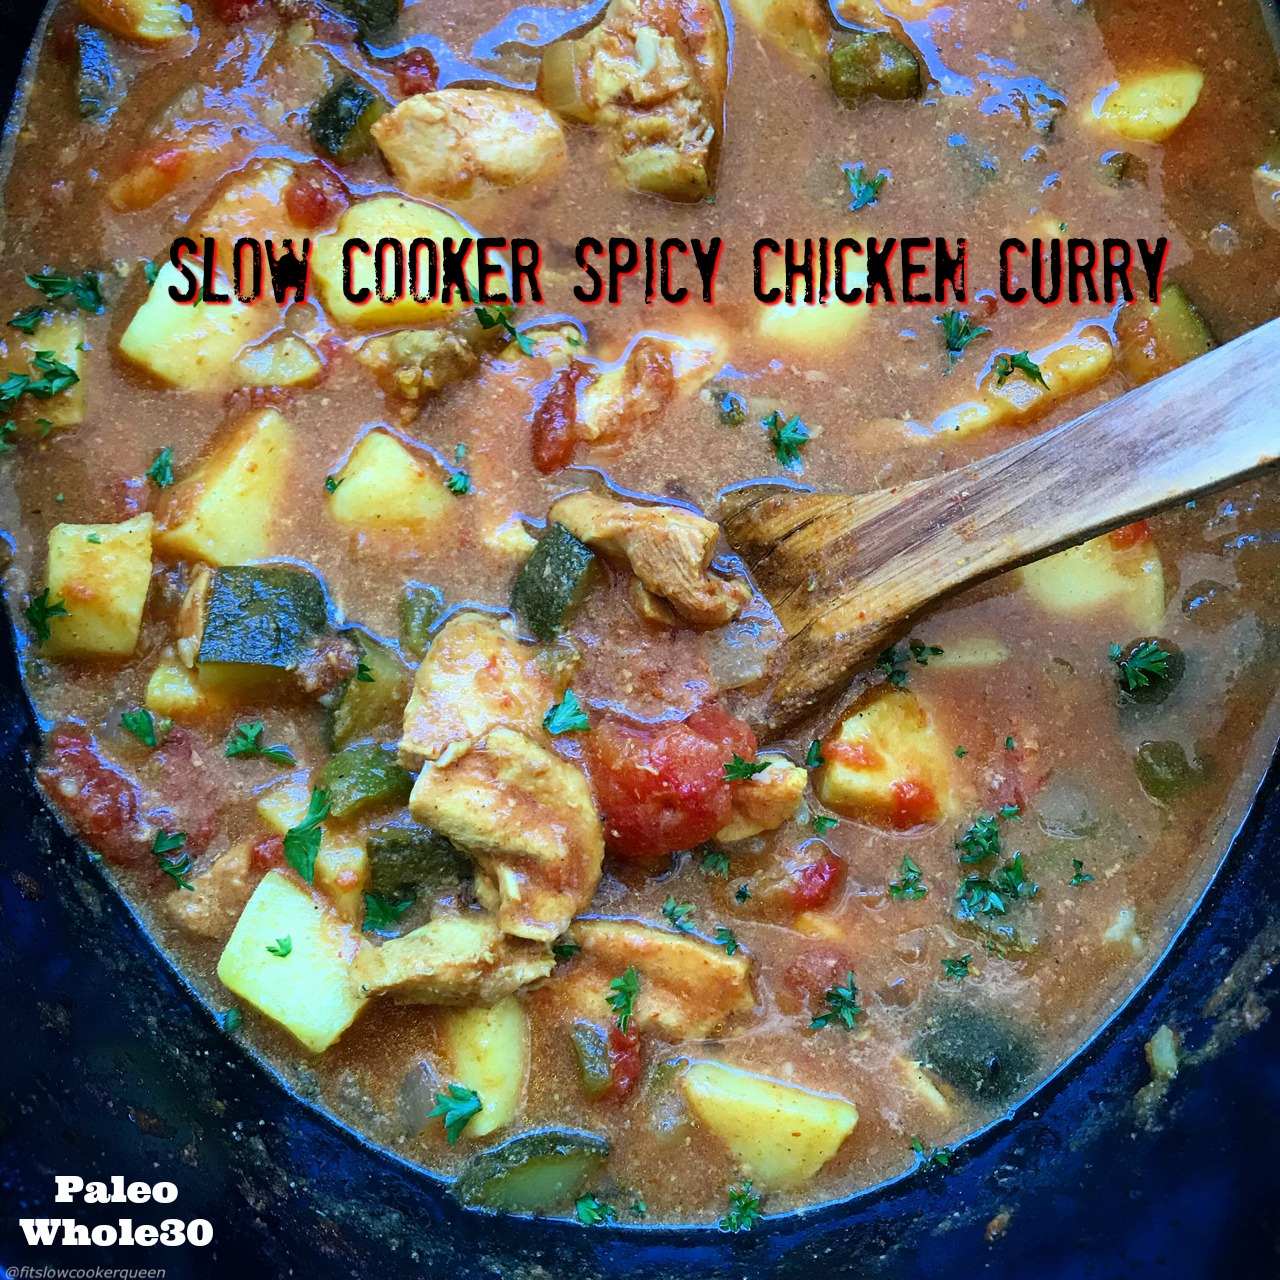 This Indian-flavored spicy chicken curry is not just an aromatic and flavorful dish, it's paleo, whole30 compliant, and super easy to make.Sit back and let your slow cooker create a delicious curry.